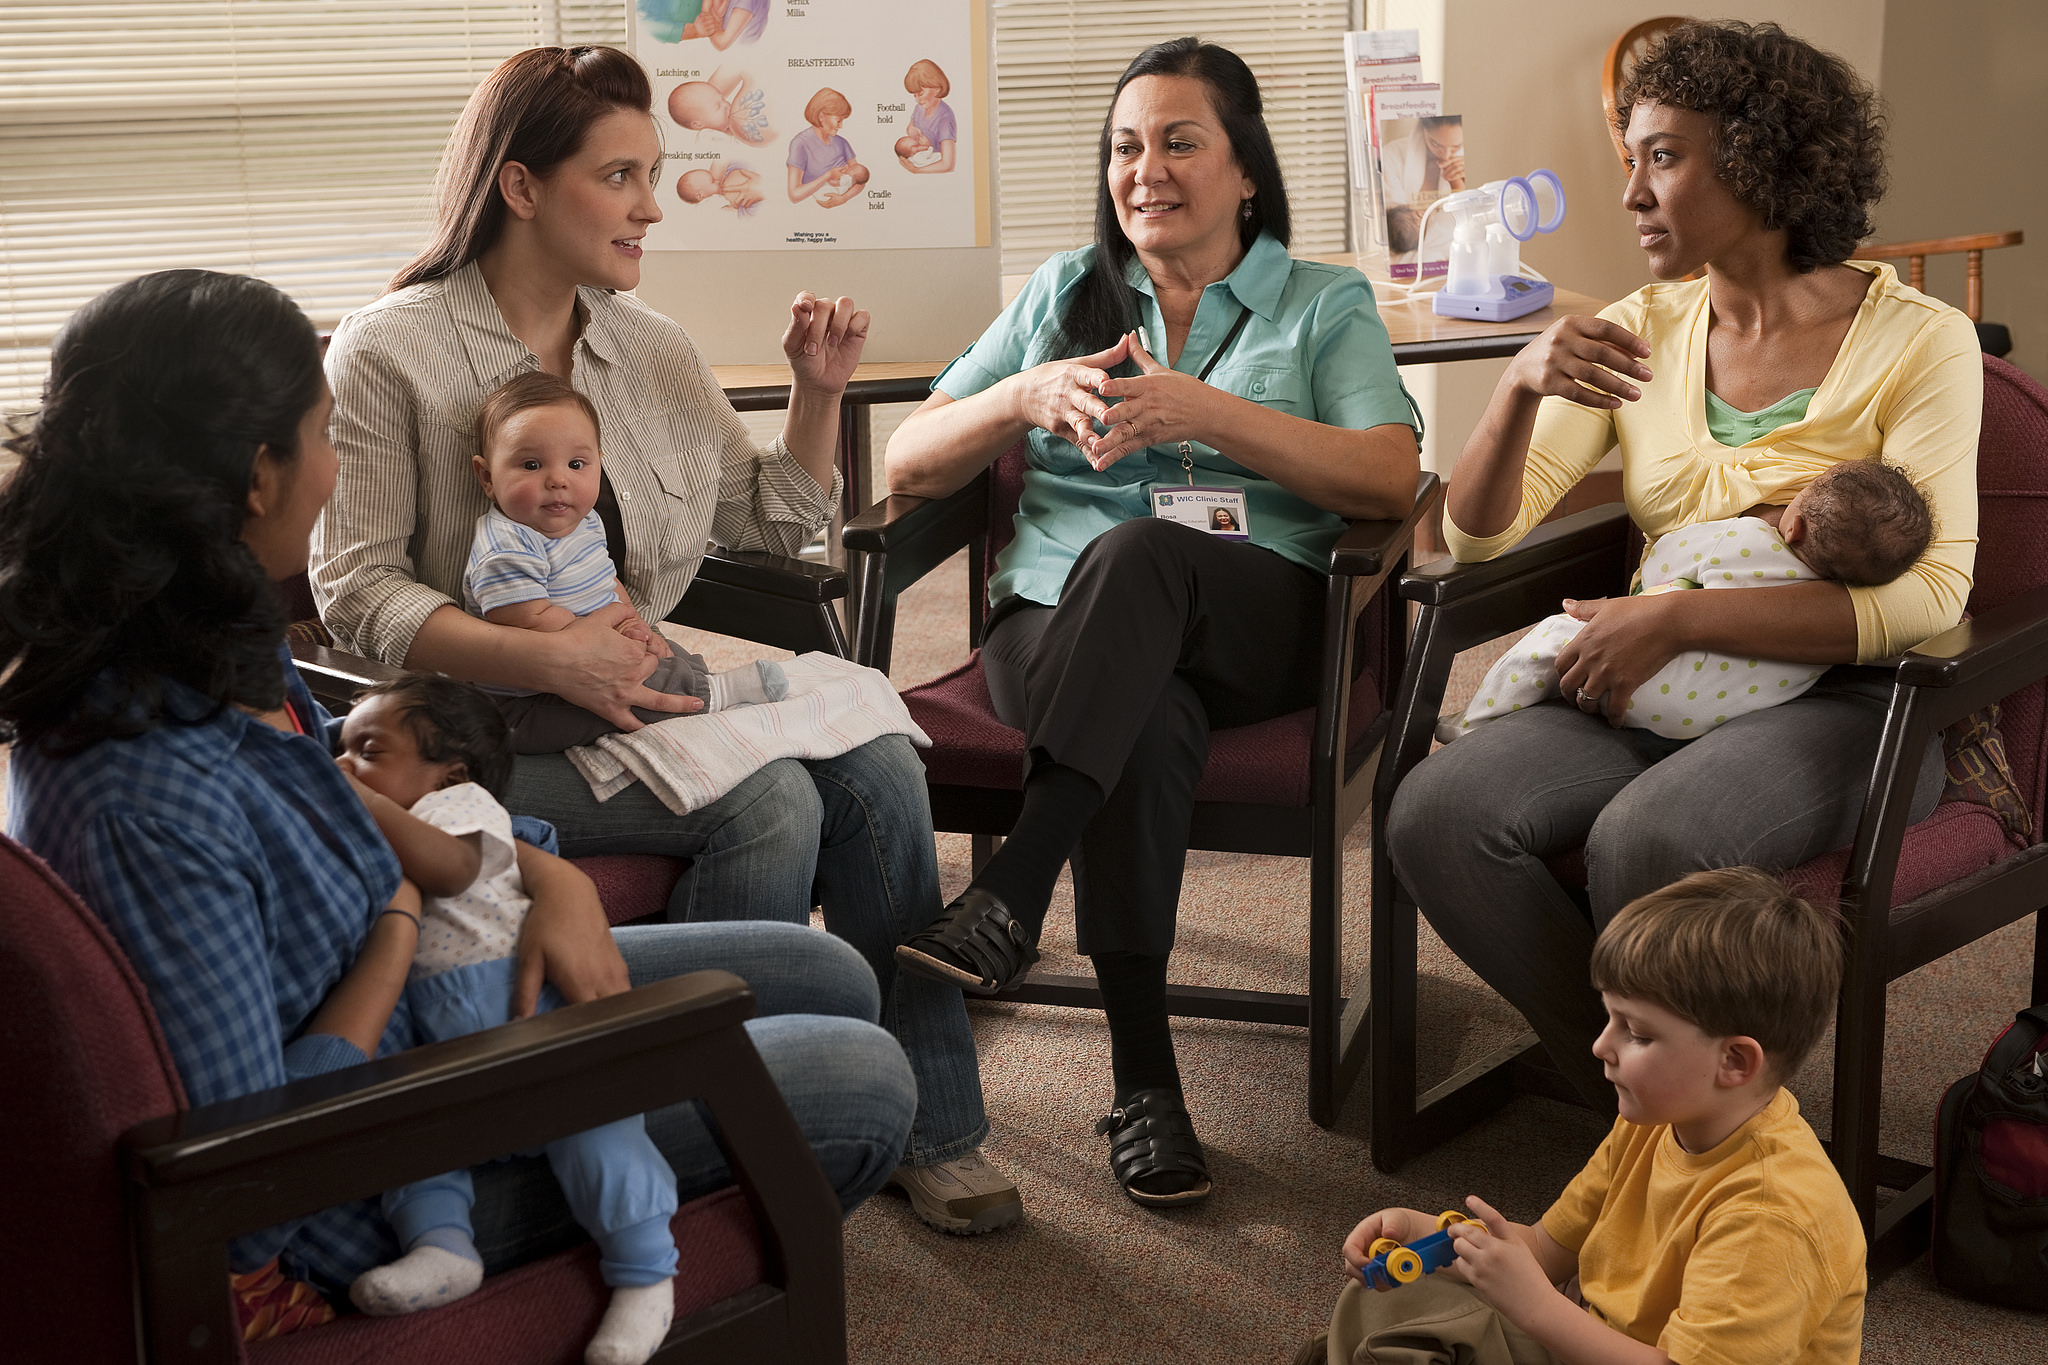 New moms participating in a group discussion